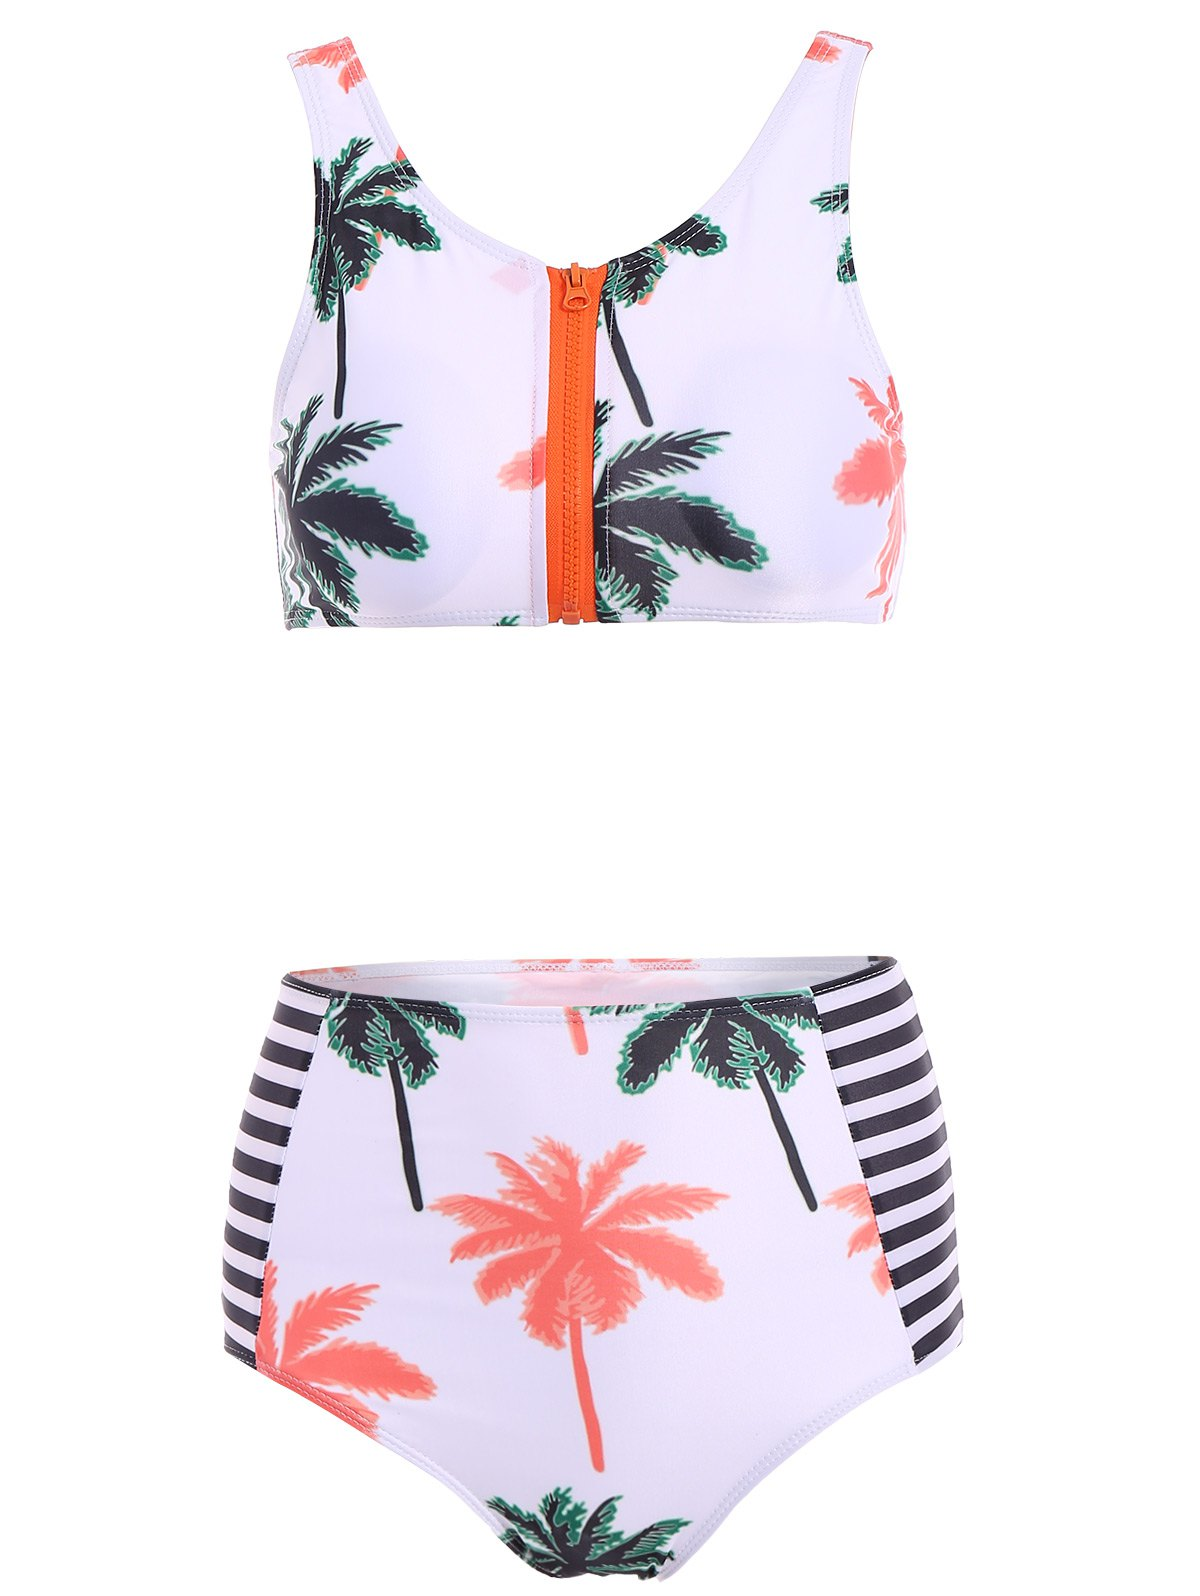 Stylish High Neck Palm Tree Print Striped High Waist Women's Bikini Set - WHITE S